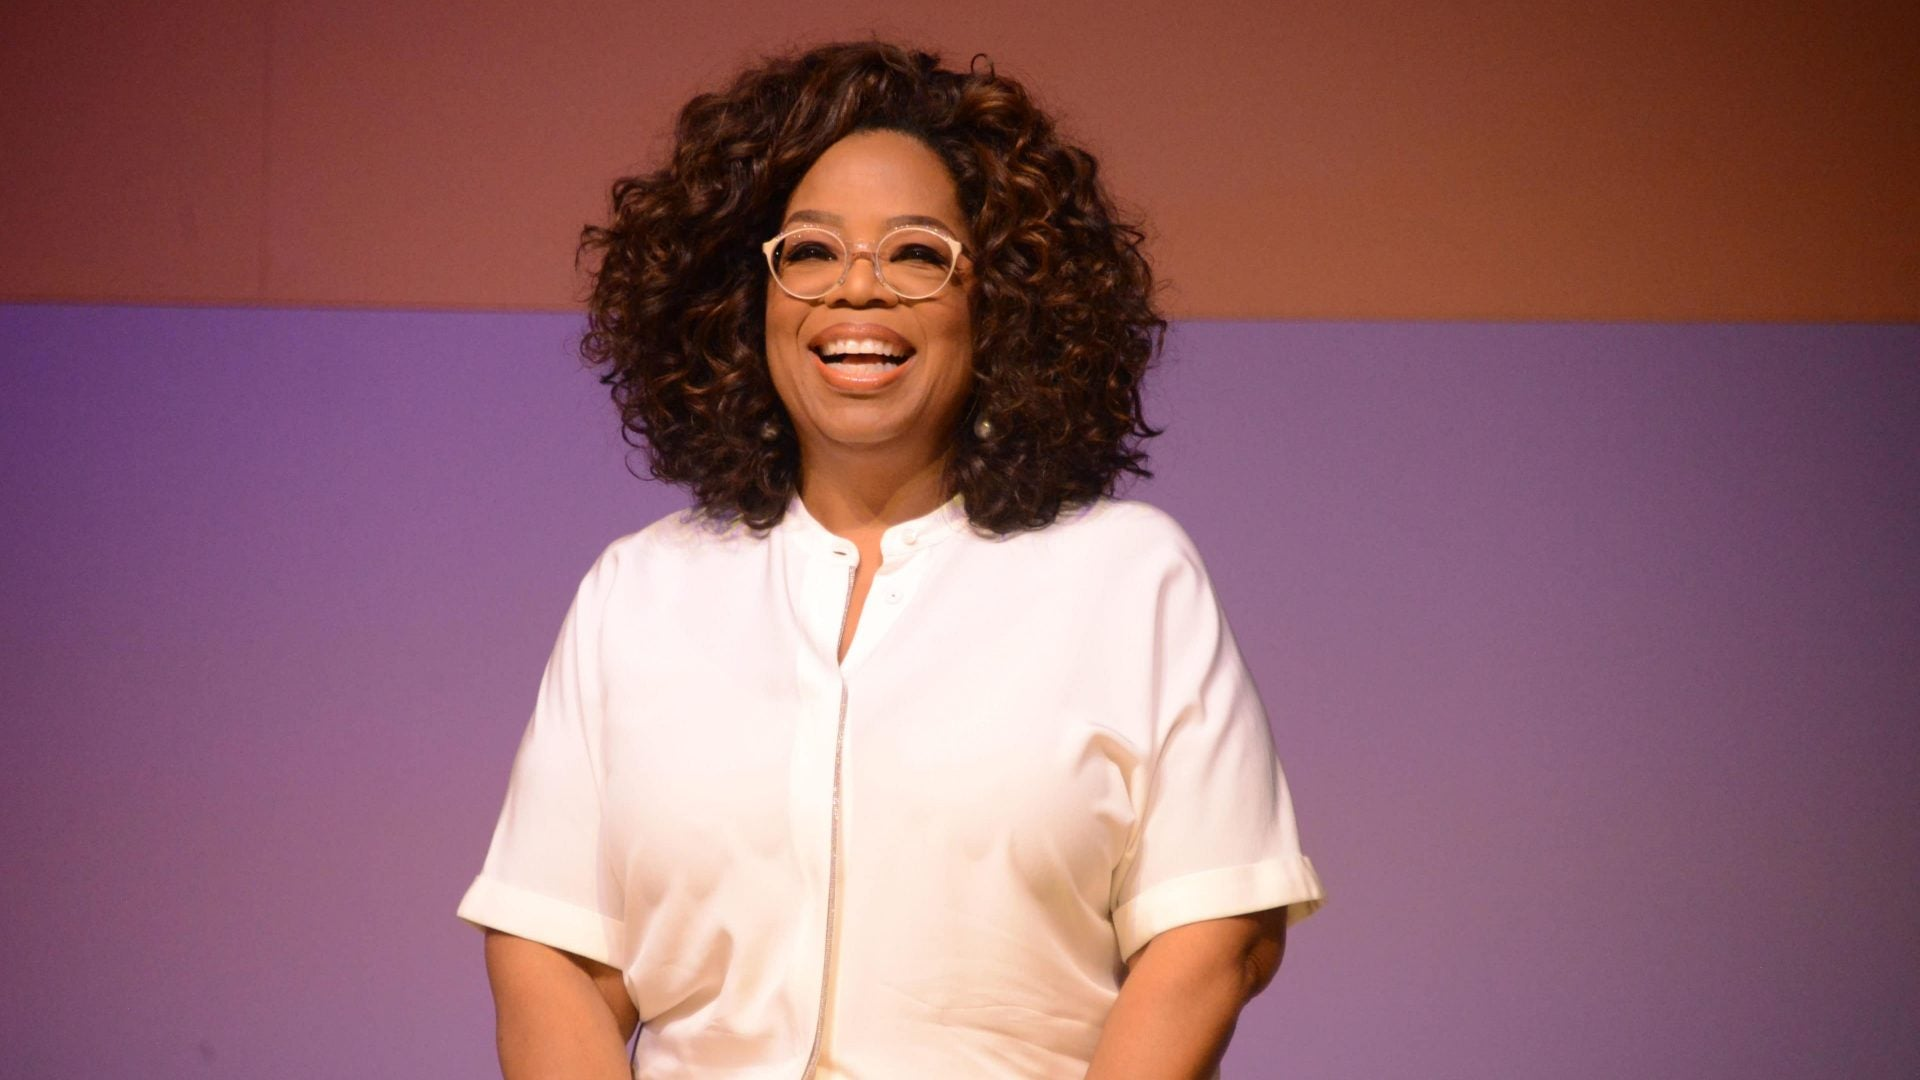 So Sweet! Oprah Just Helped One Of Her Academy Grads Pick Out Her Wedding Dress